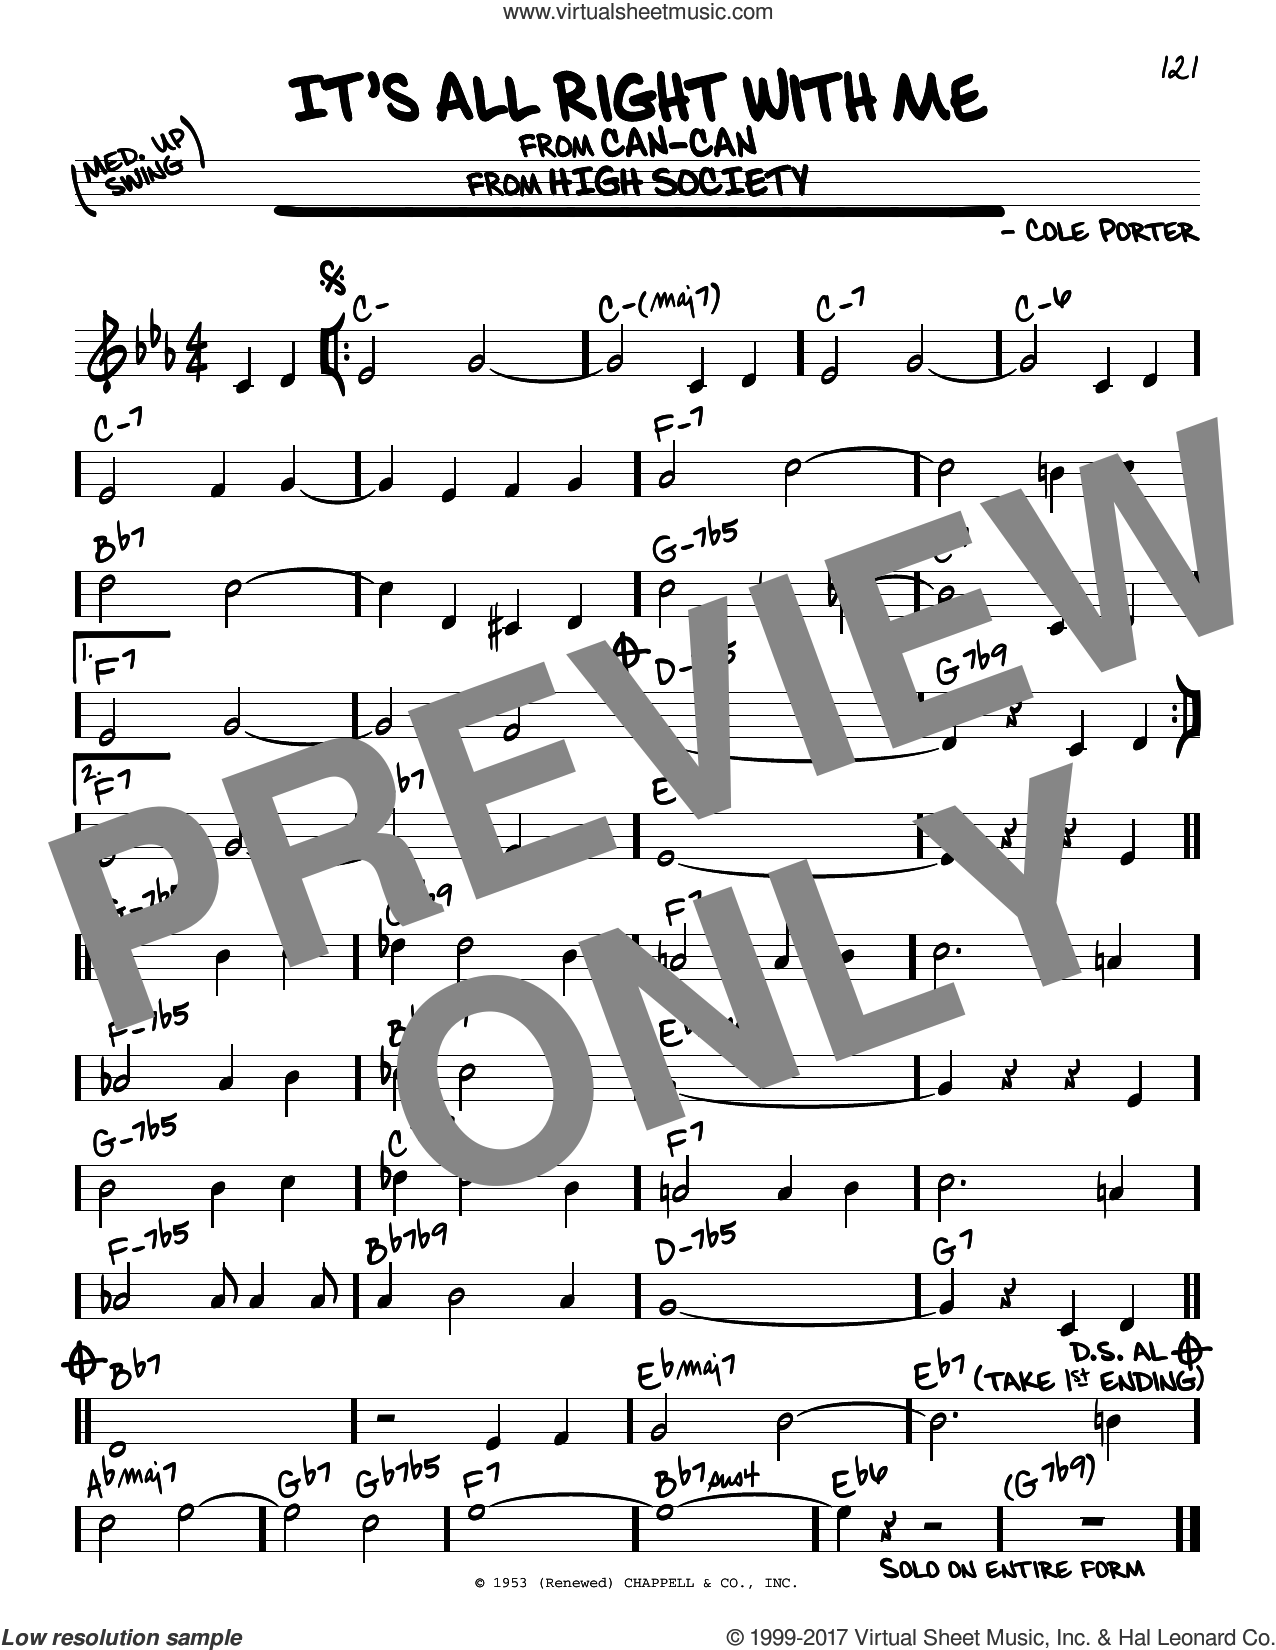 It's All Right With Me sheet music for voice and other instruments (real book) by Cole Porter, intermediate skill level